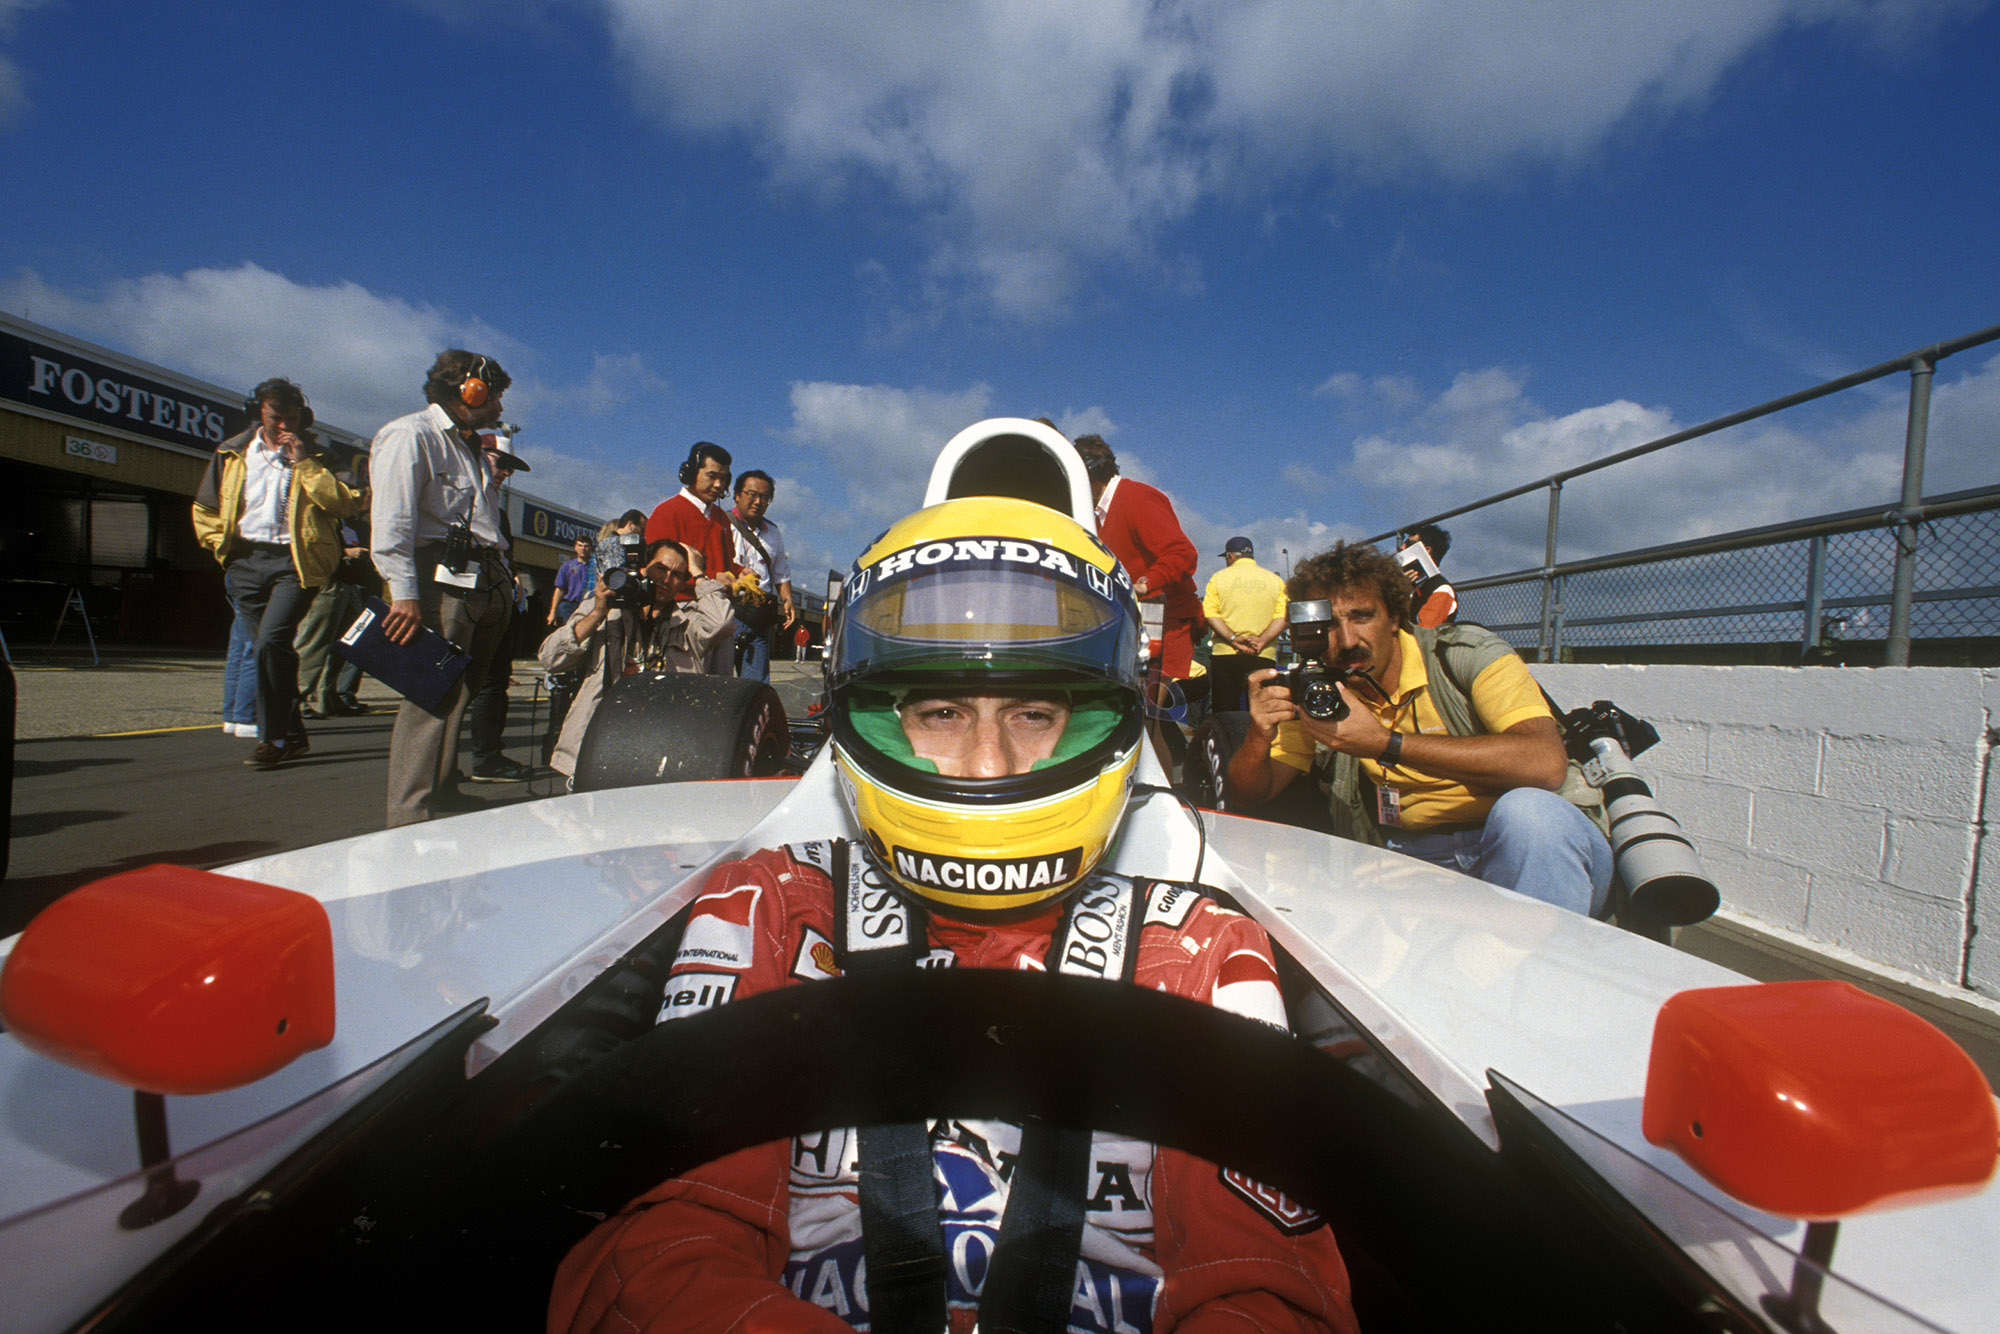 Ayrton Senna in his McLaren Honda ahead of the 1990 British Grand Prix